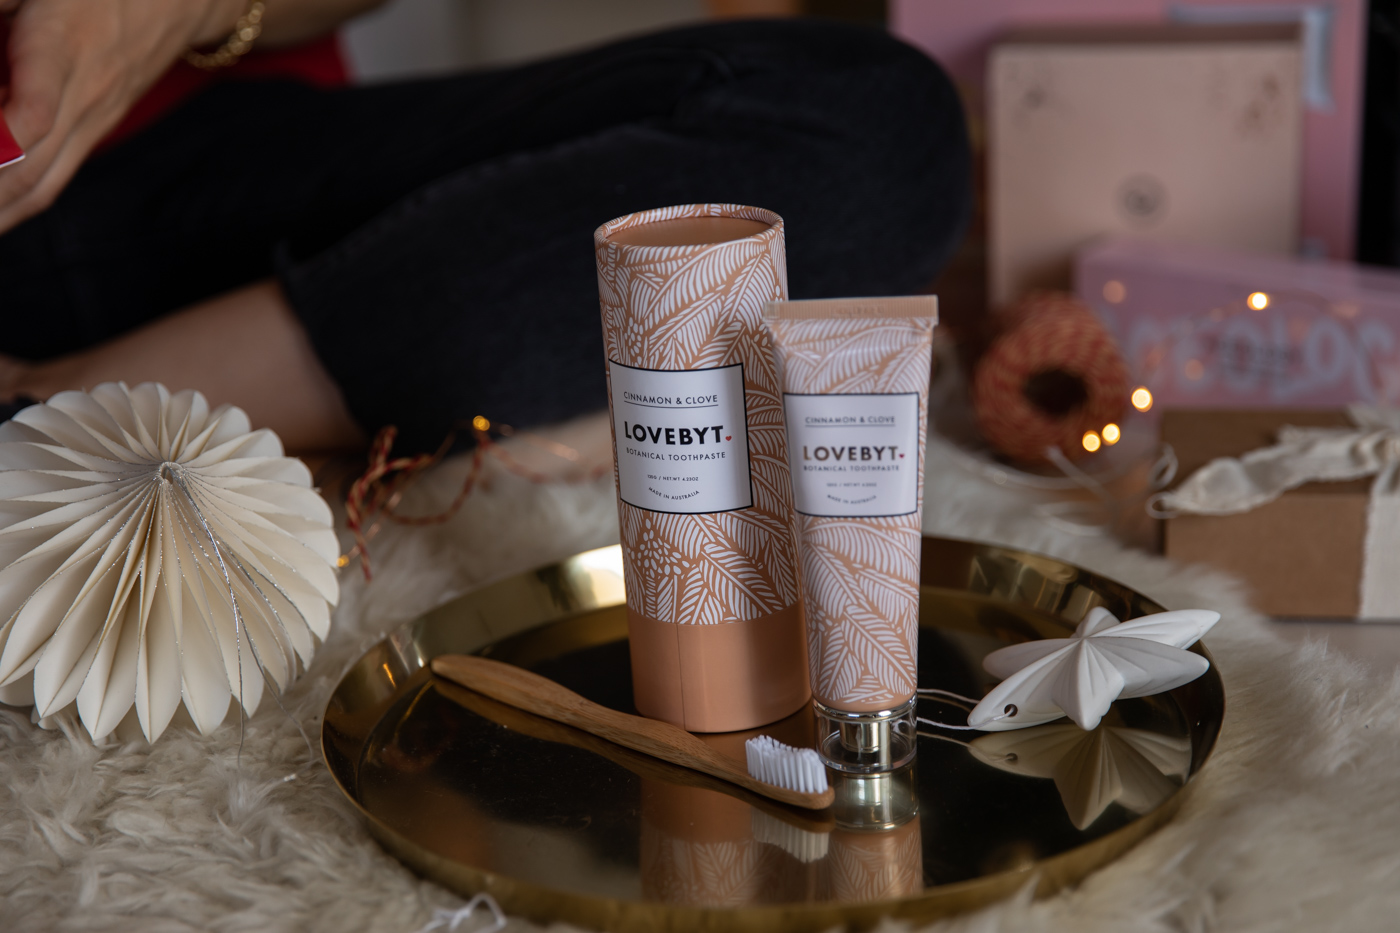 Cinnamon and Clove toothpaste from Love by T Christmas stocking stuffer idea